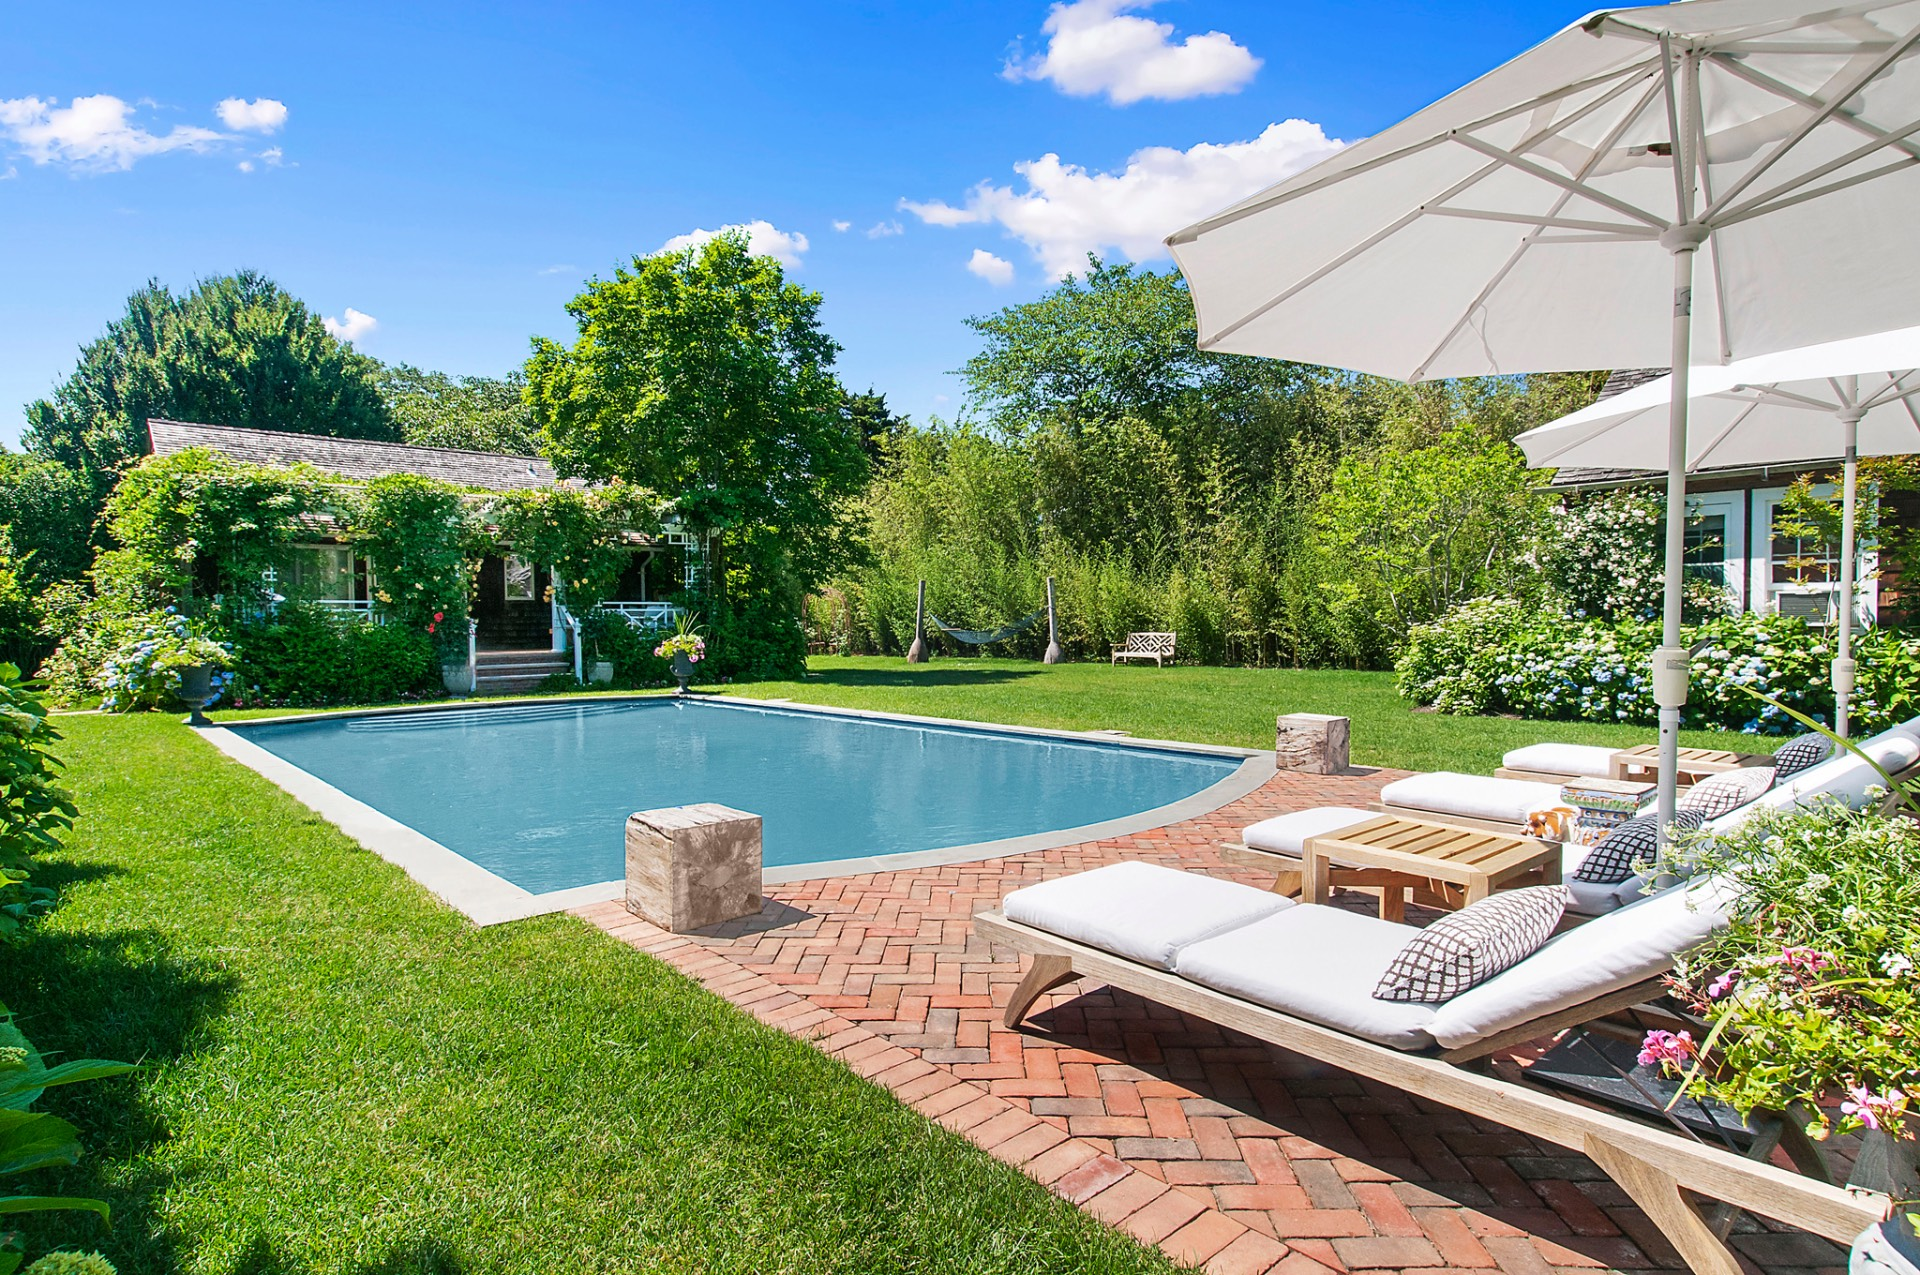 Casa Unifamiliar por un Alquiler en East Hampton Village South Newly Renovated East Hampton, Nueva York